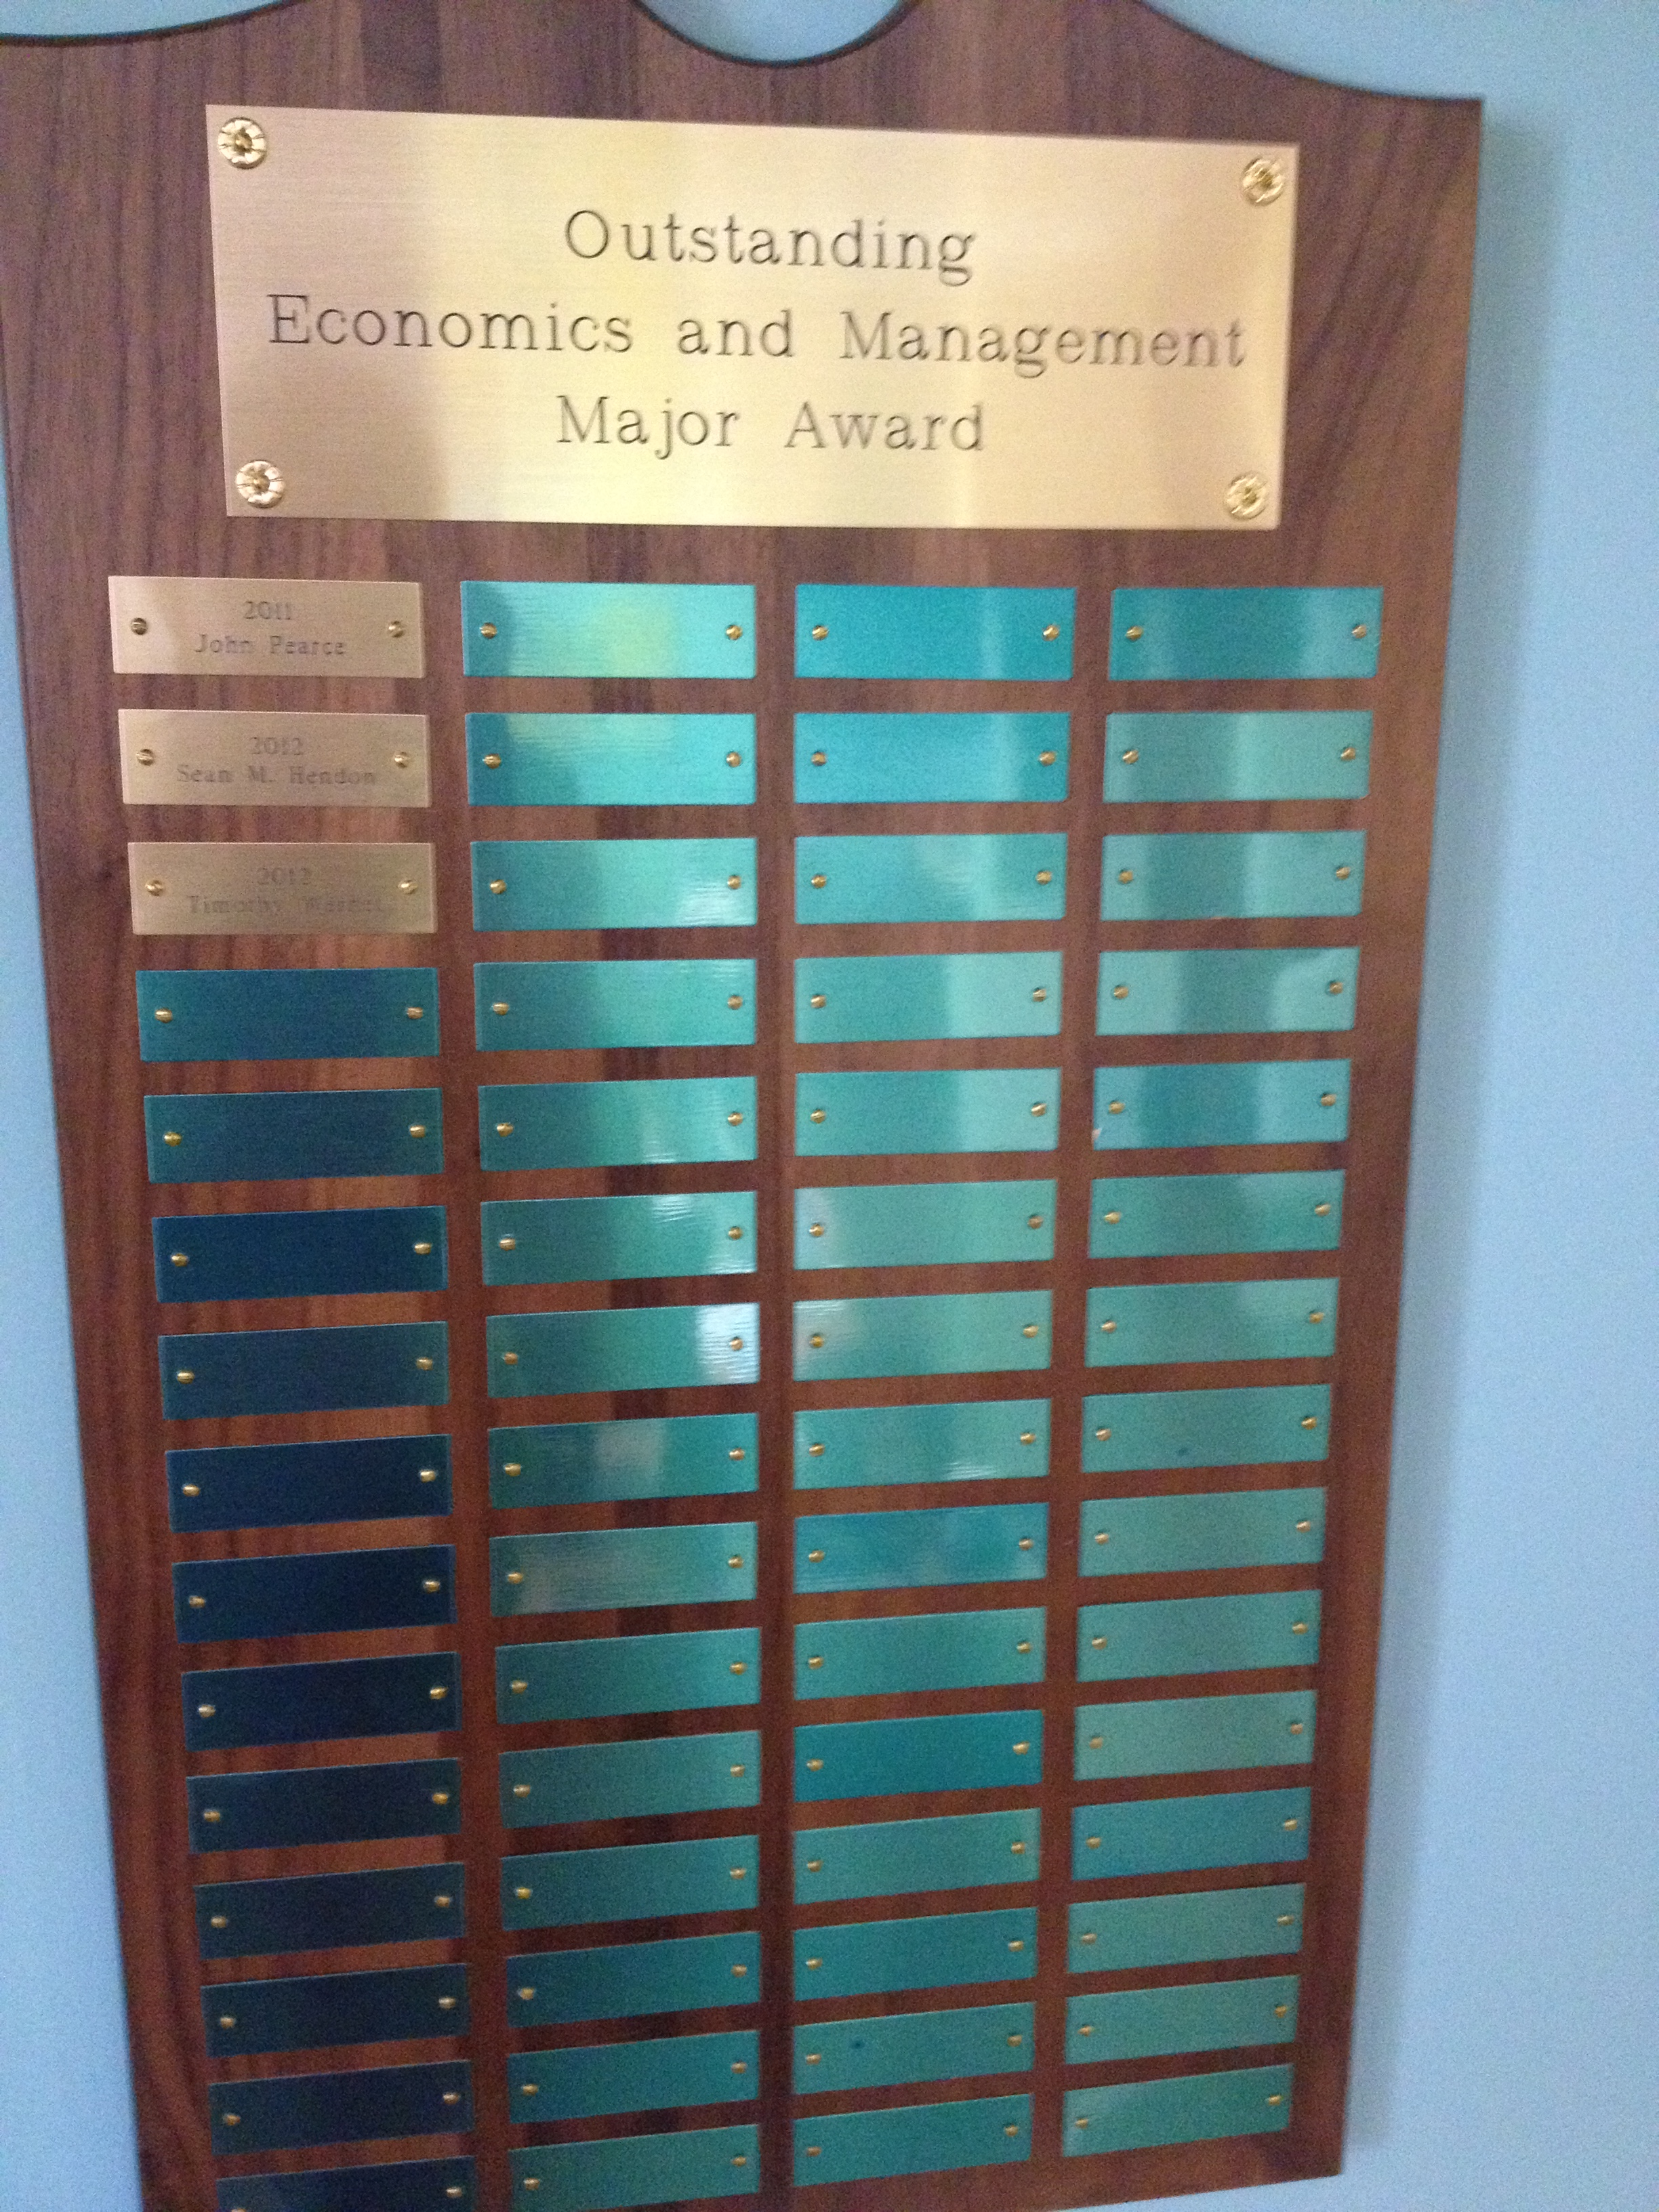 Economics and Management Outstanding Major